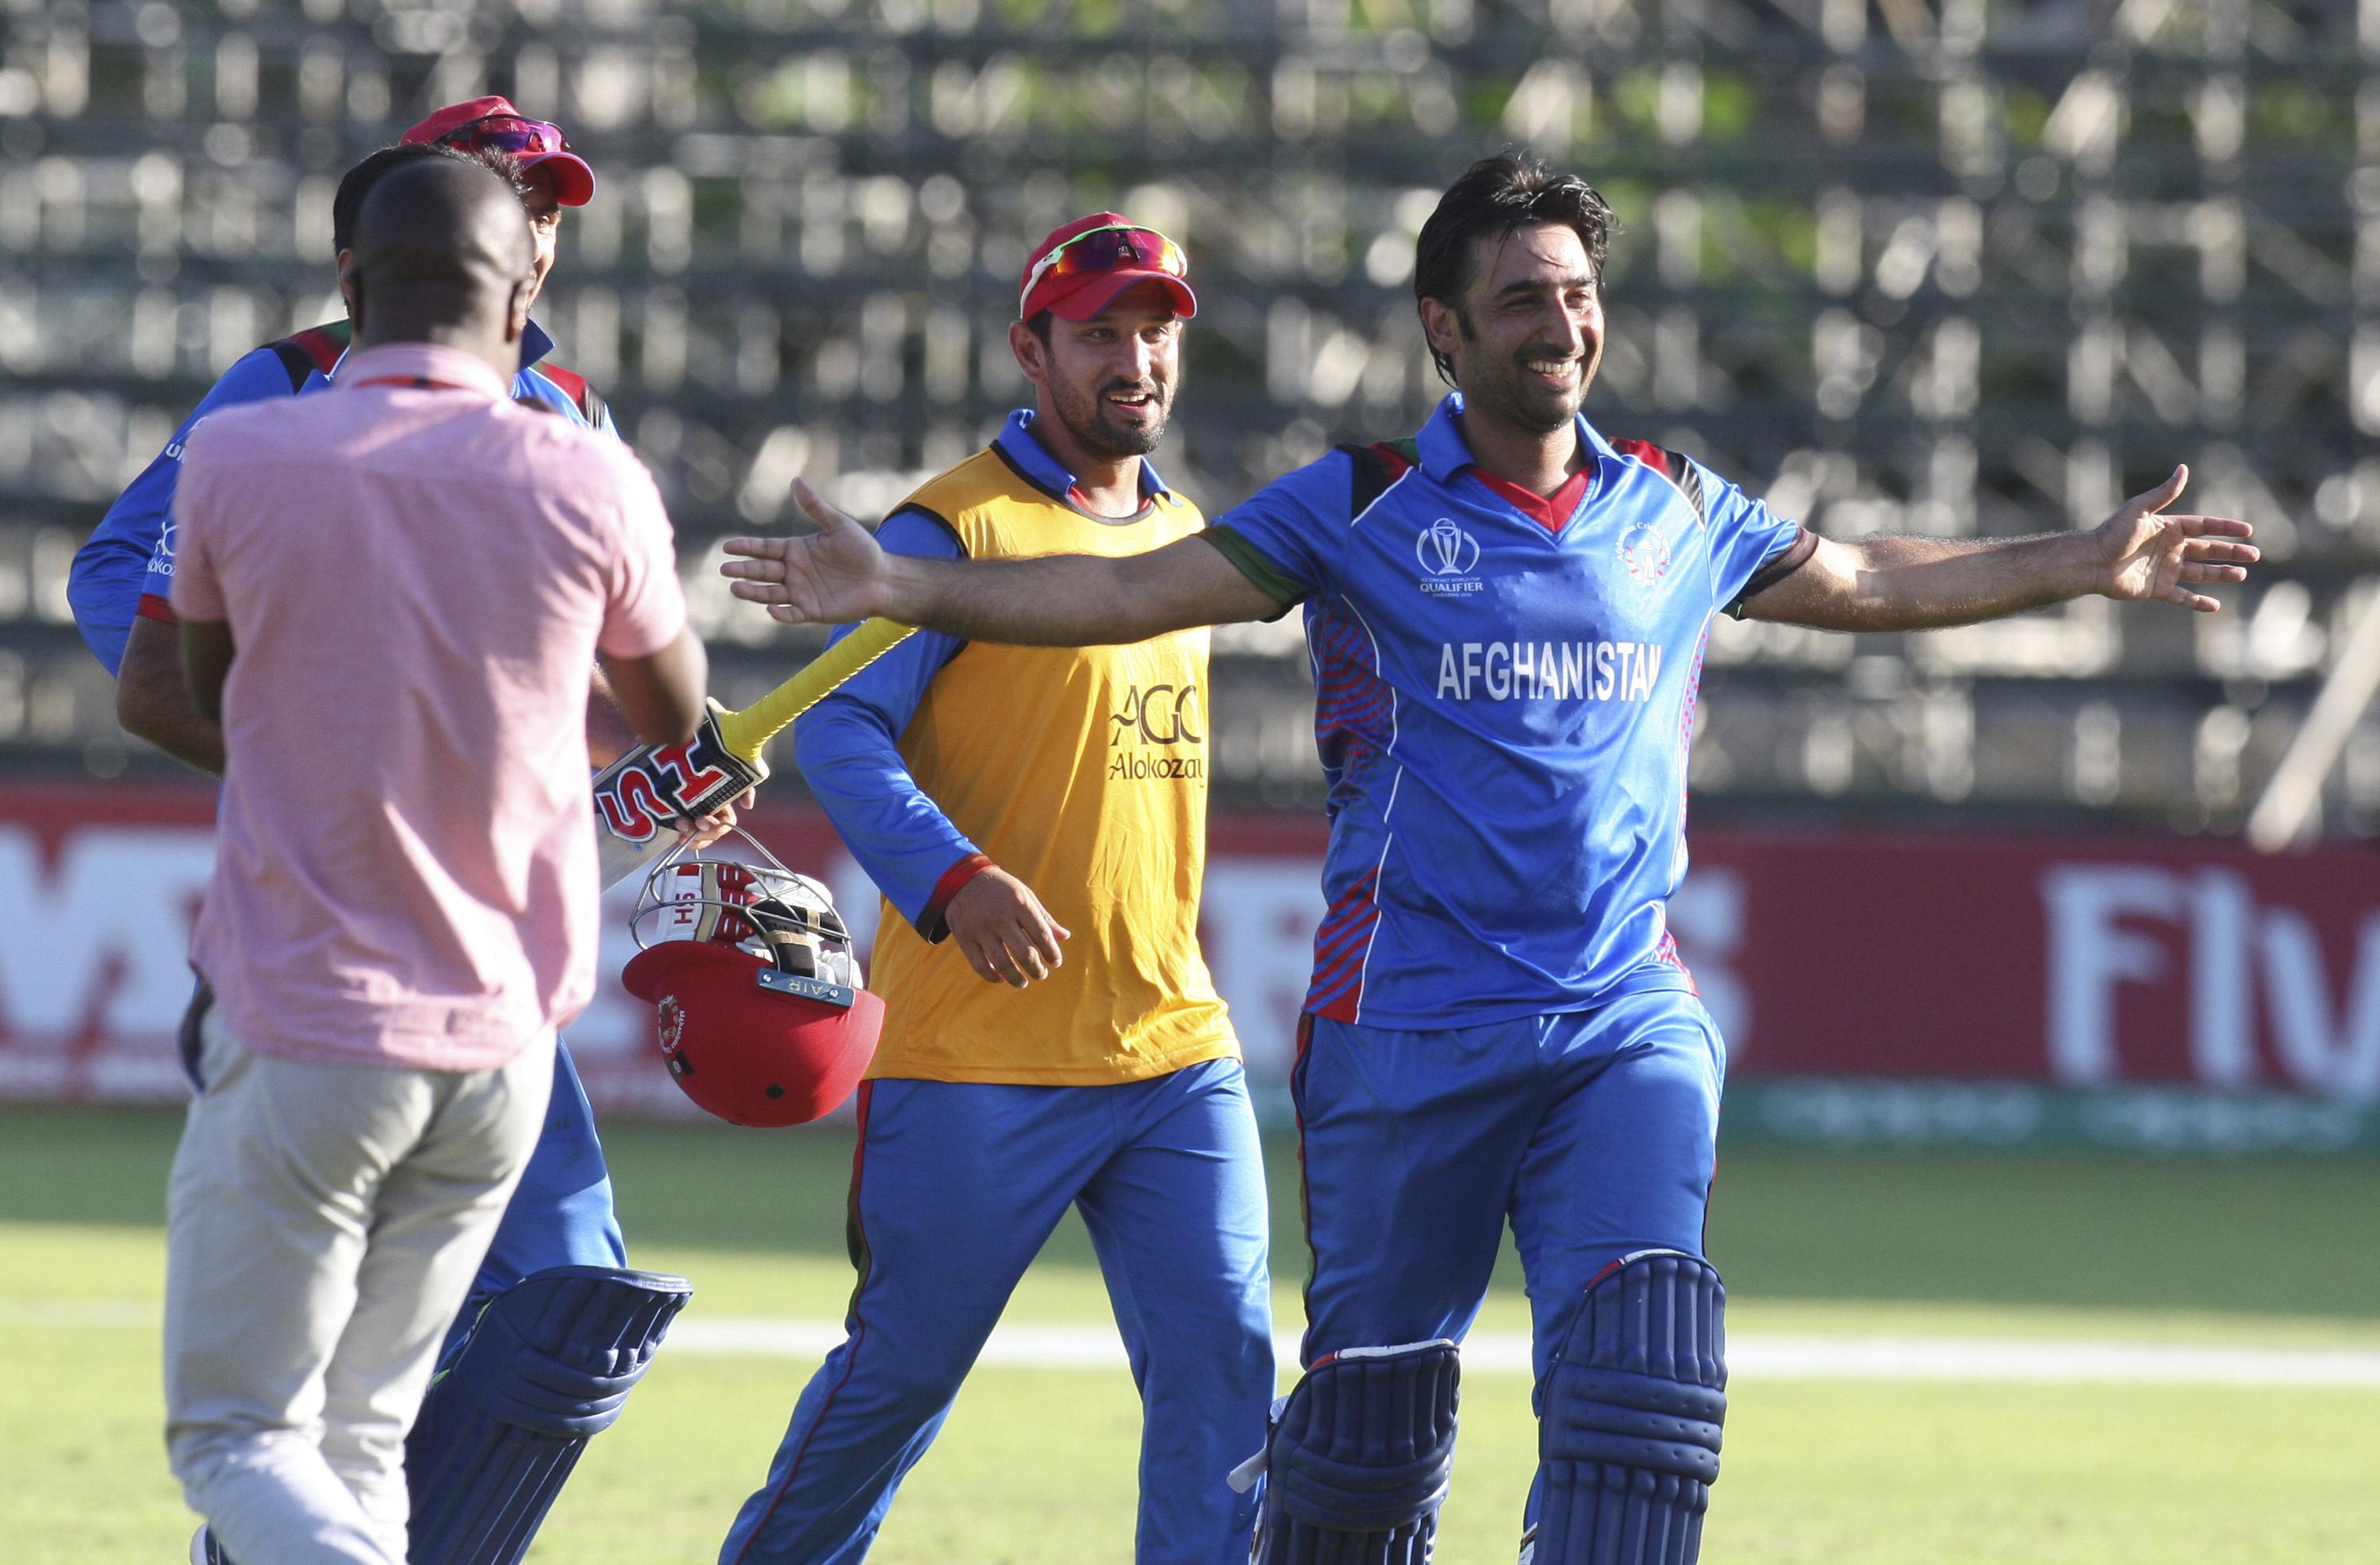 Afghanistan join West Indies in making it through a tough qualifying round